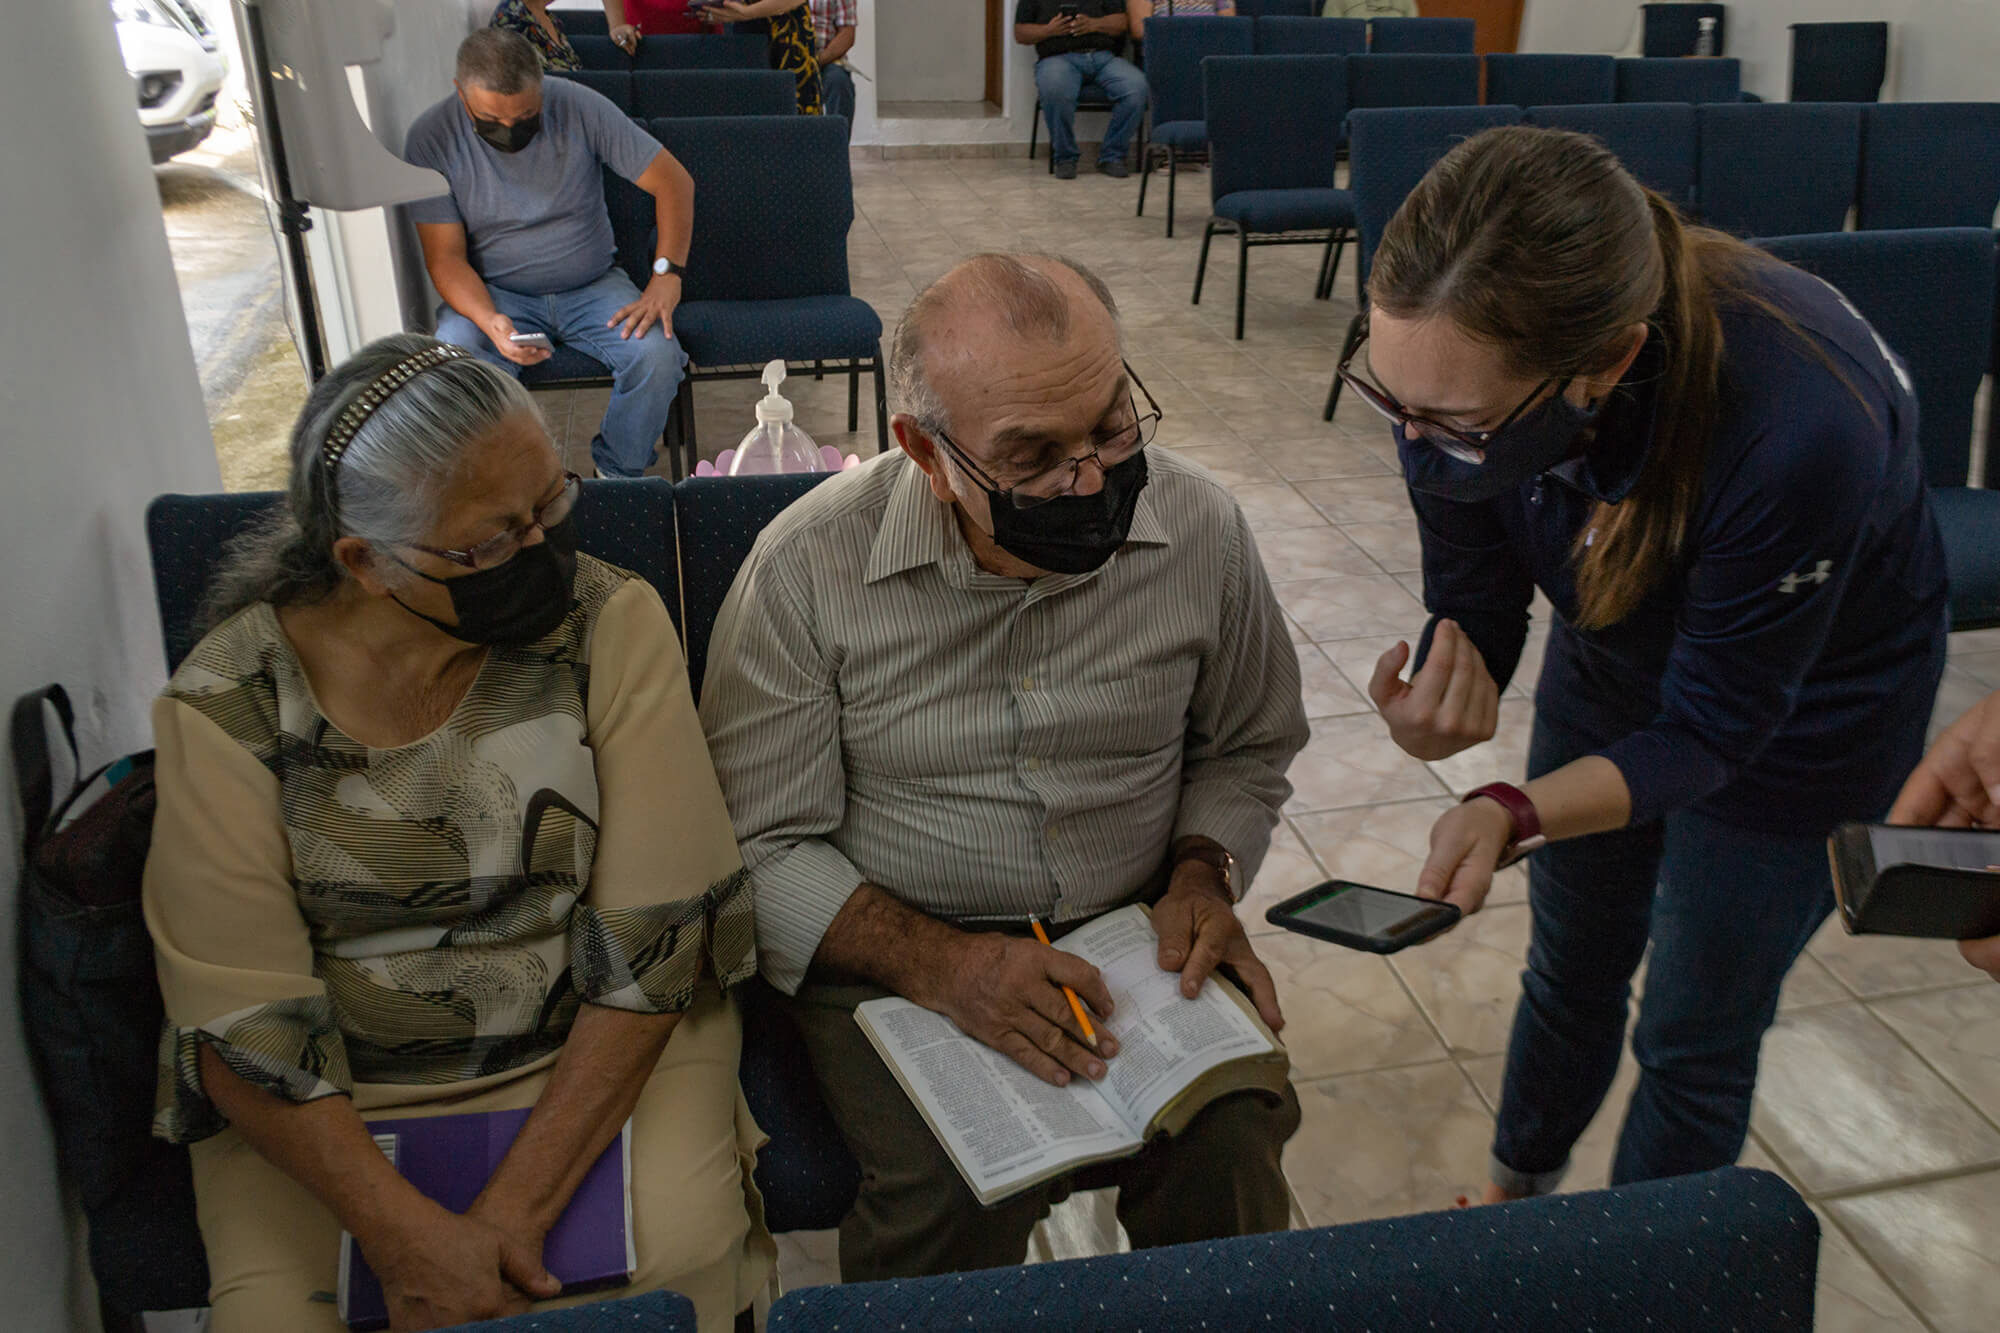 Vaccination information session with church leaders from Lares to answer questions and dispel myths surrounding vaccines.